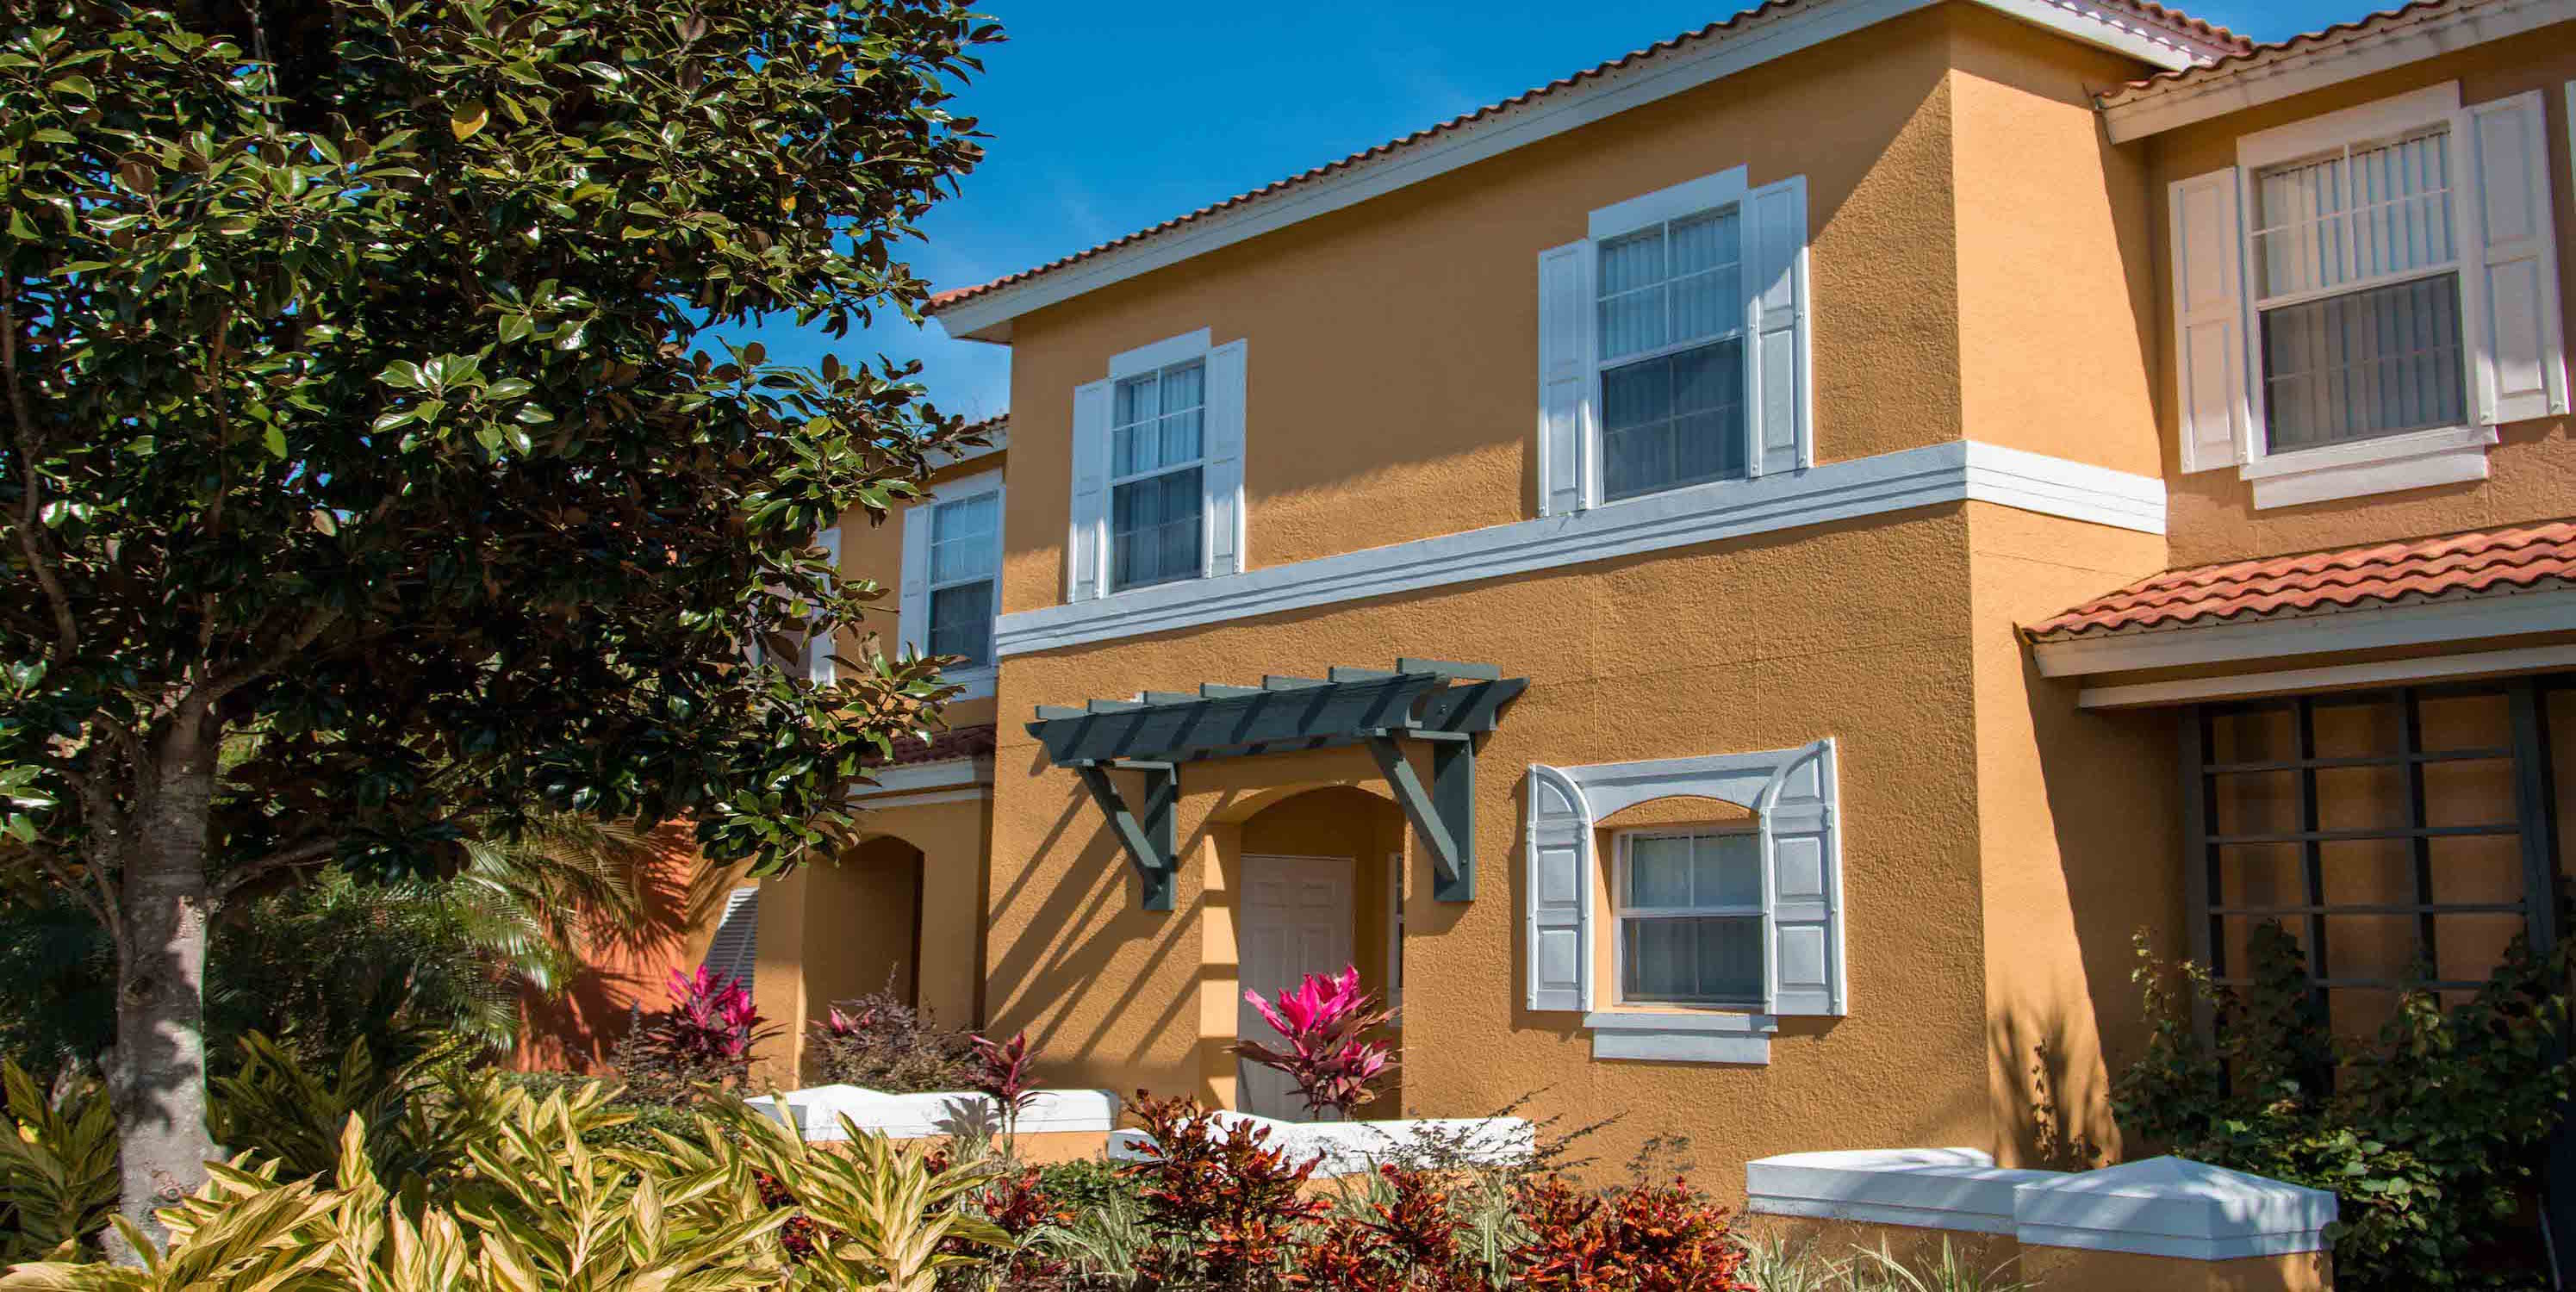 Orlando Vacation Homes for Sale Real Estate